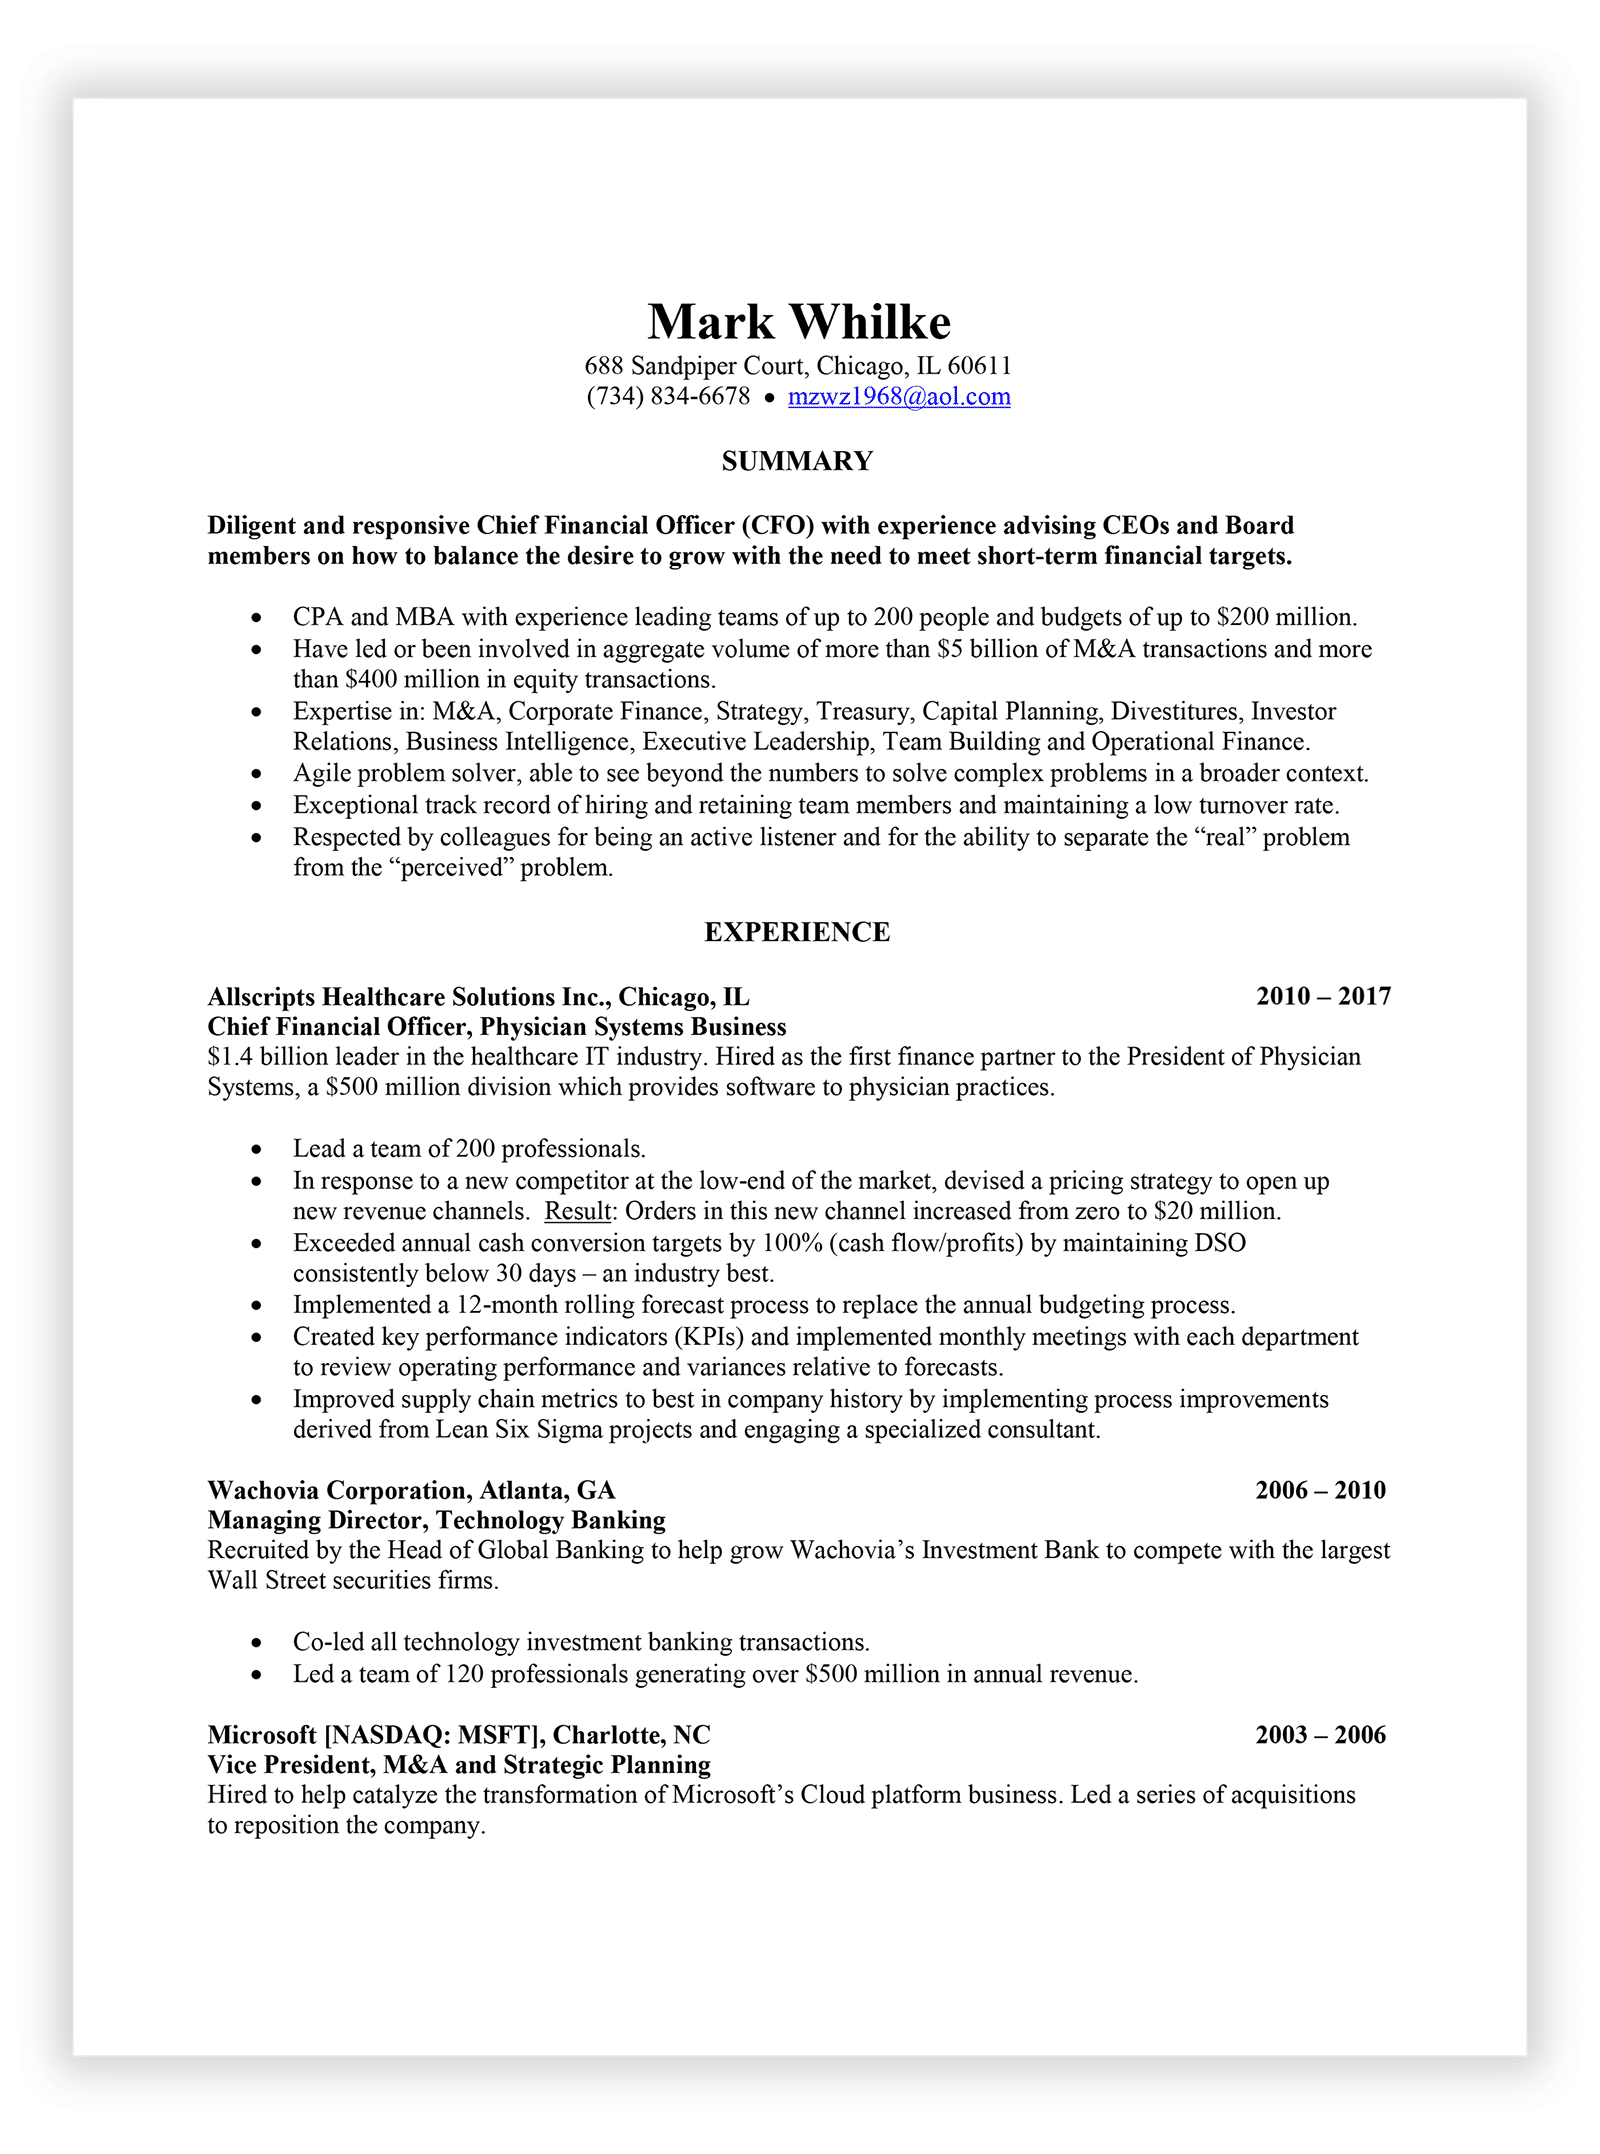 Welcome to The Resume Sage | The Resume Sage - Experienced Resume ...